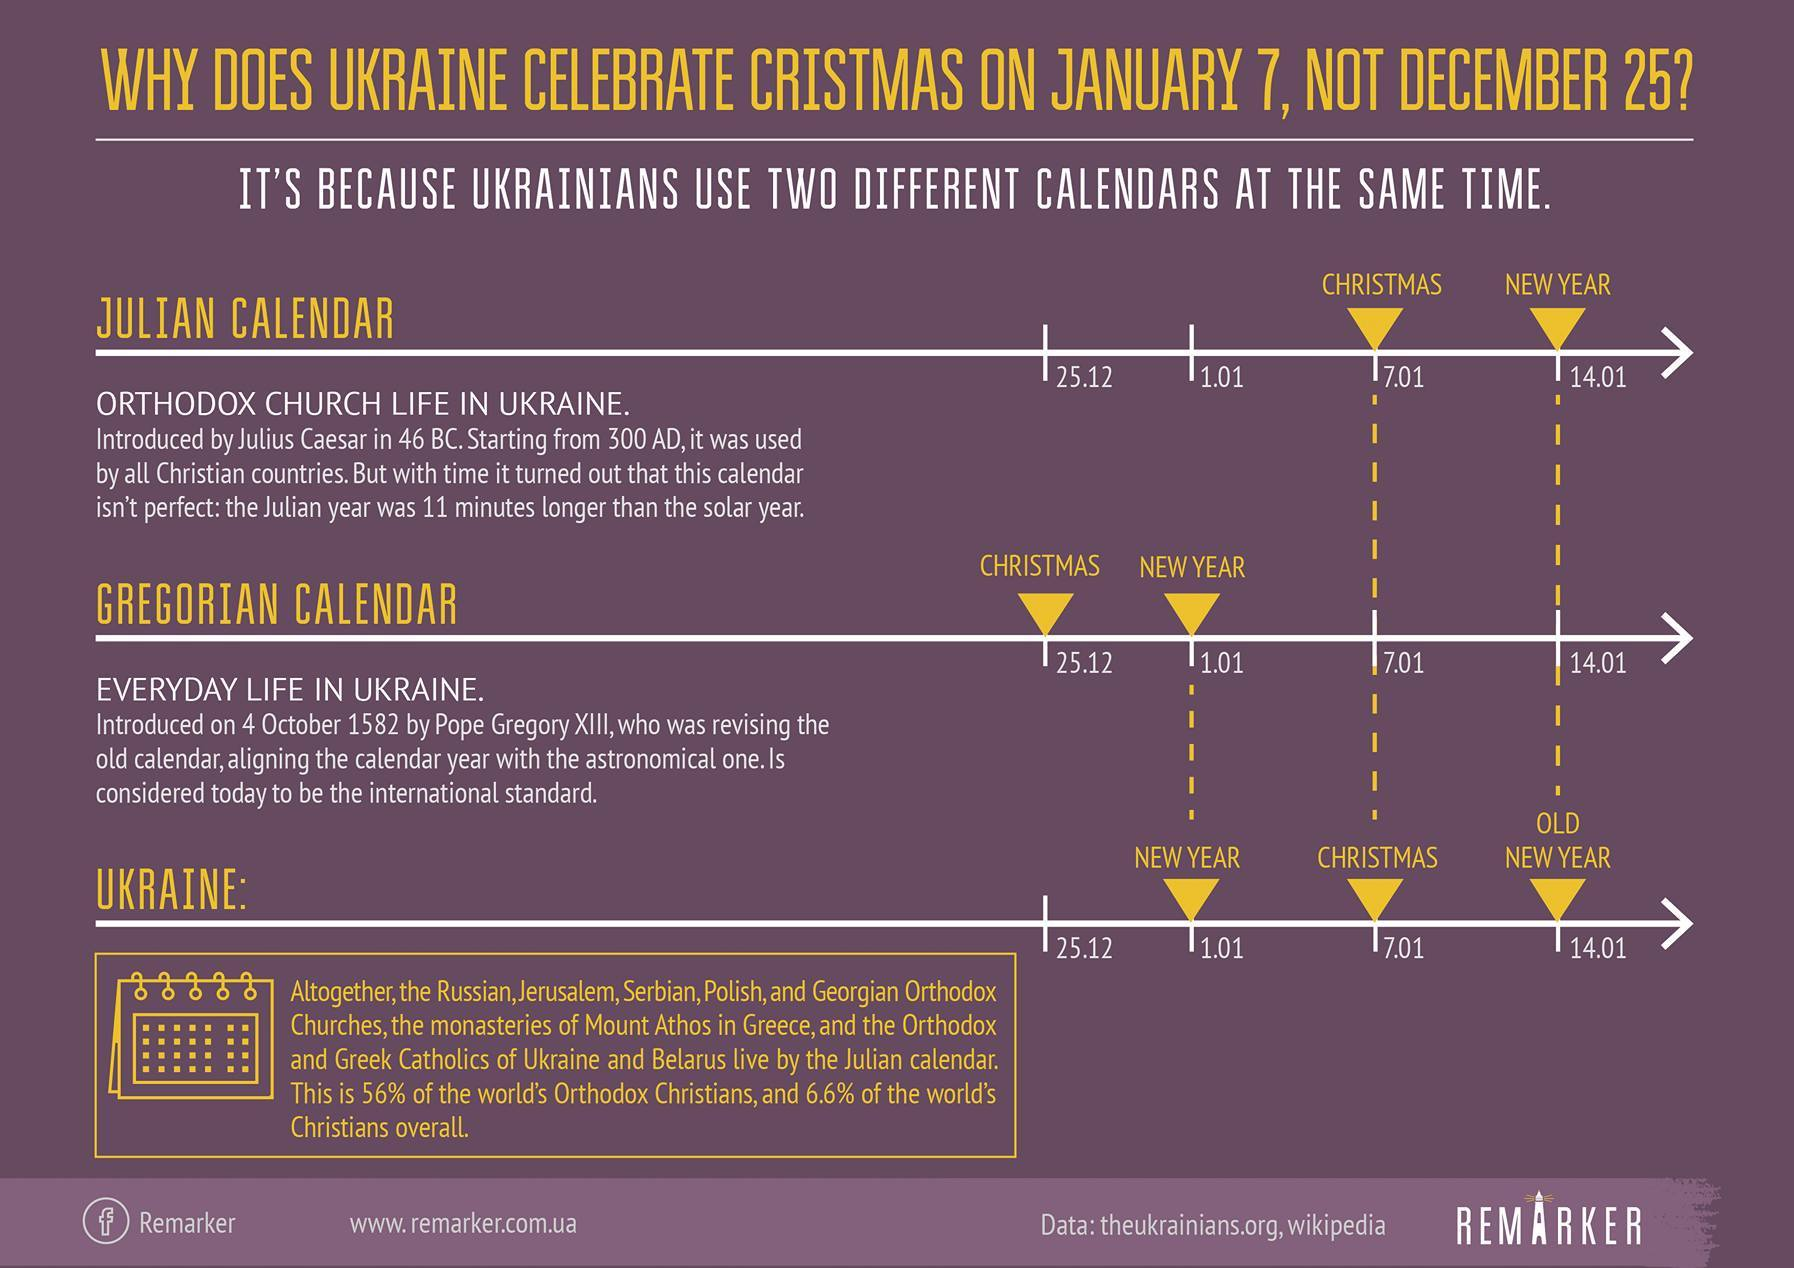 Why Does Ukraine Celebrate Christmas On January 7 Not December 25